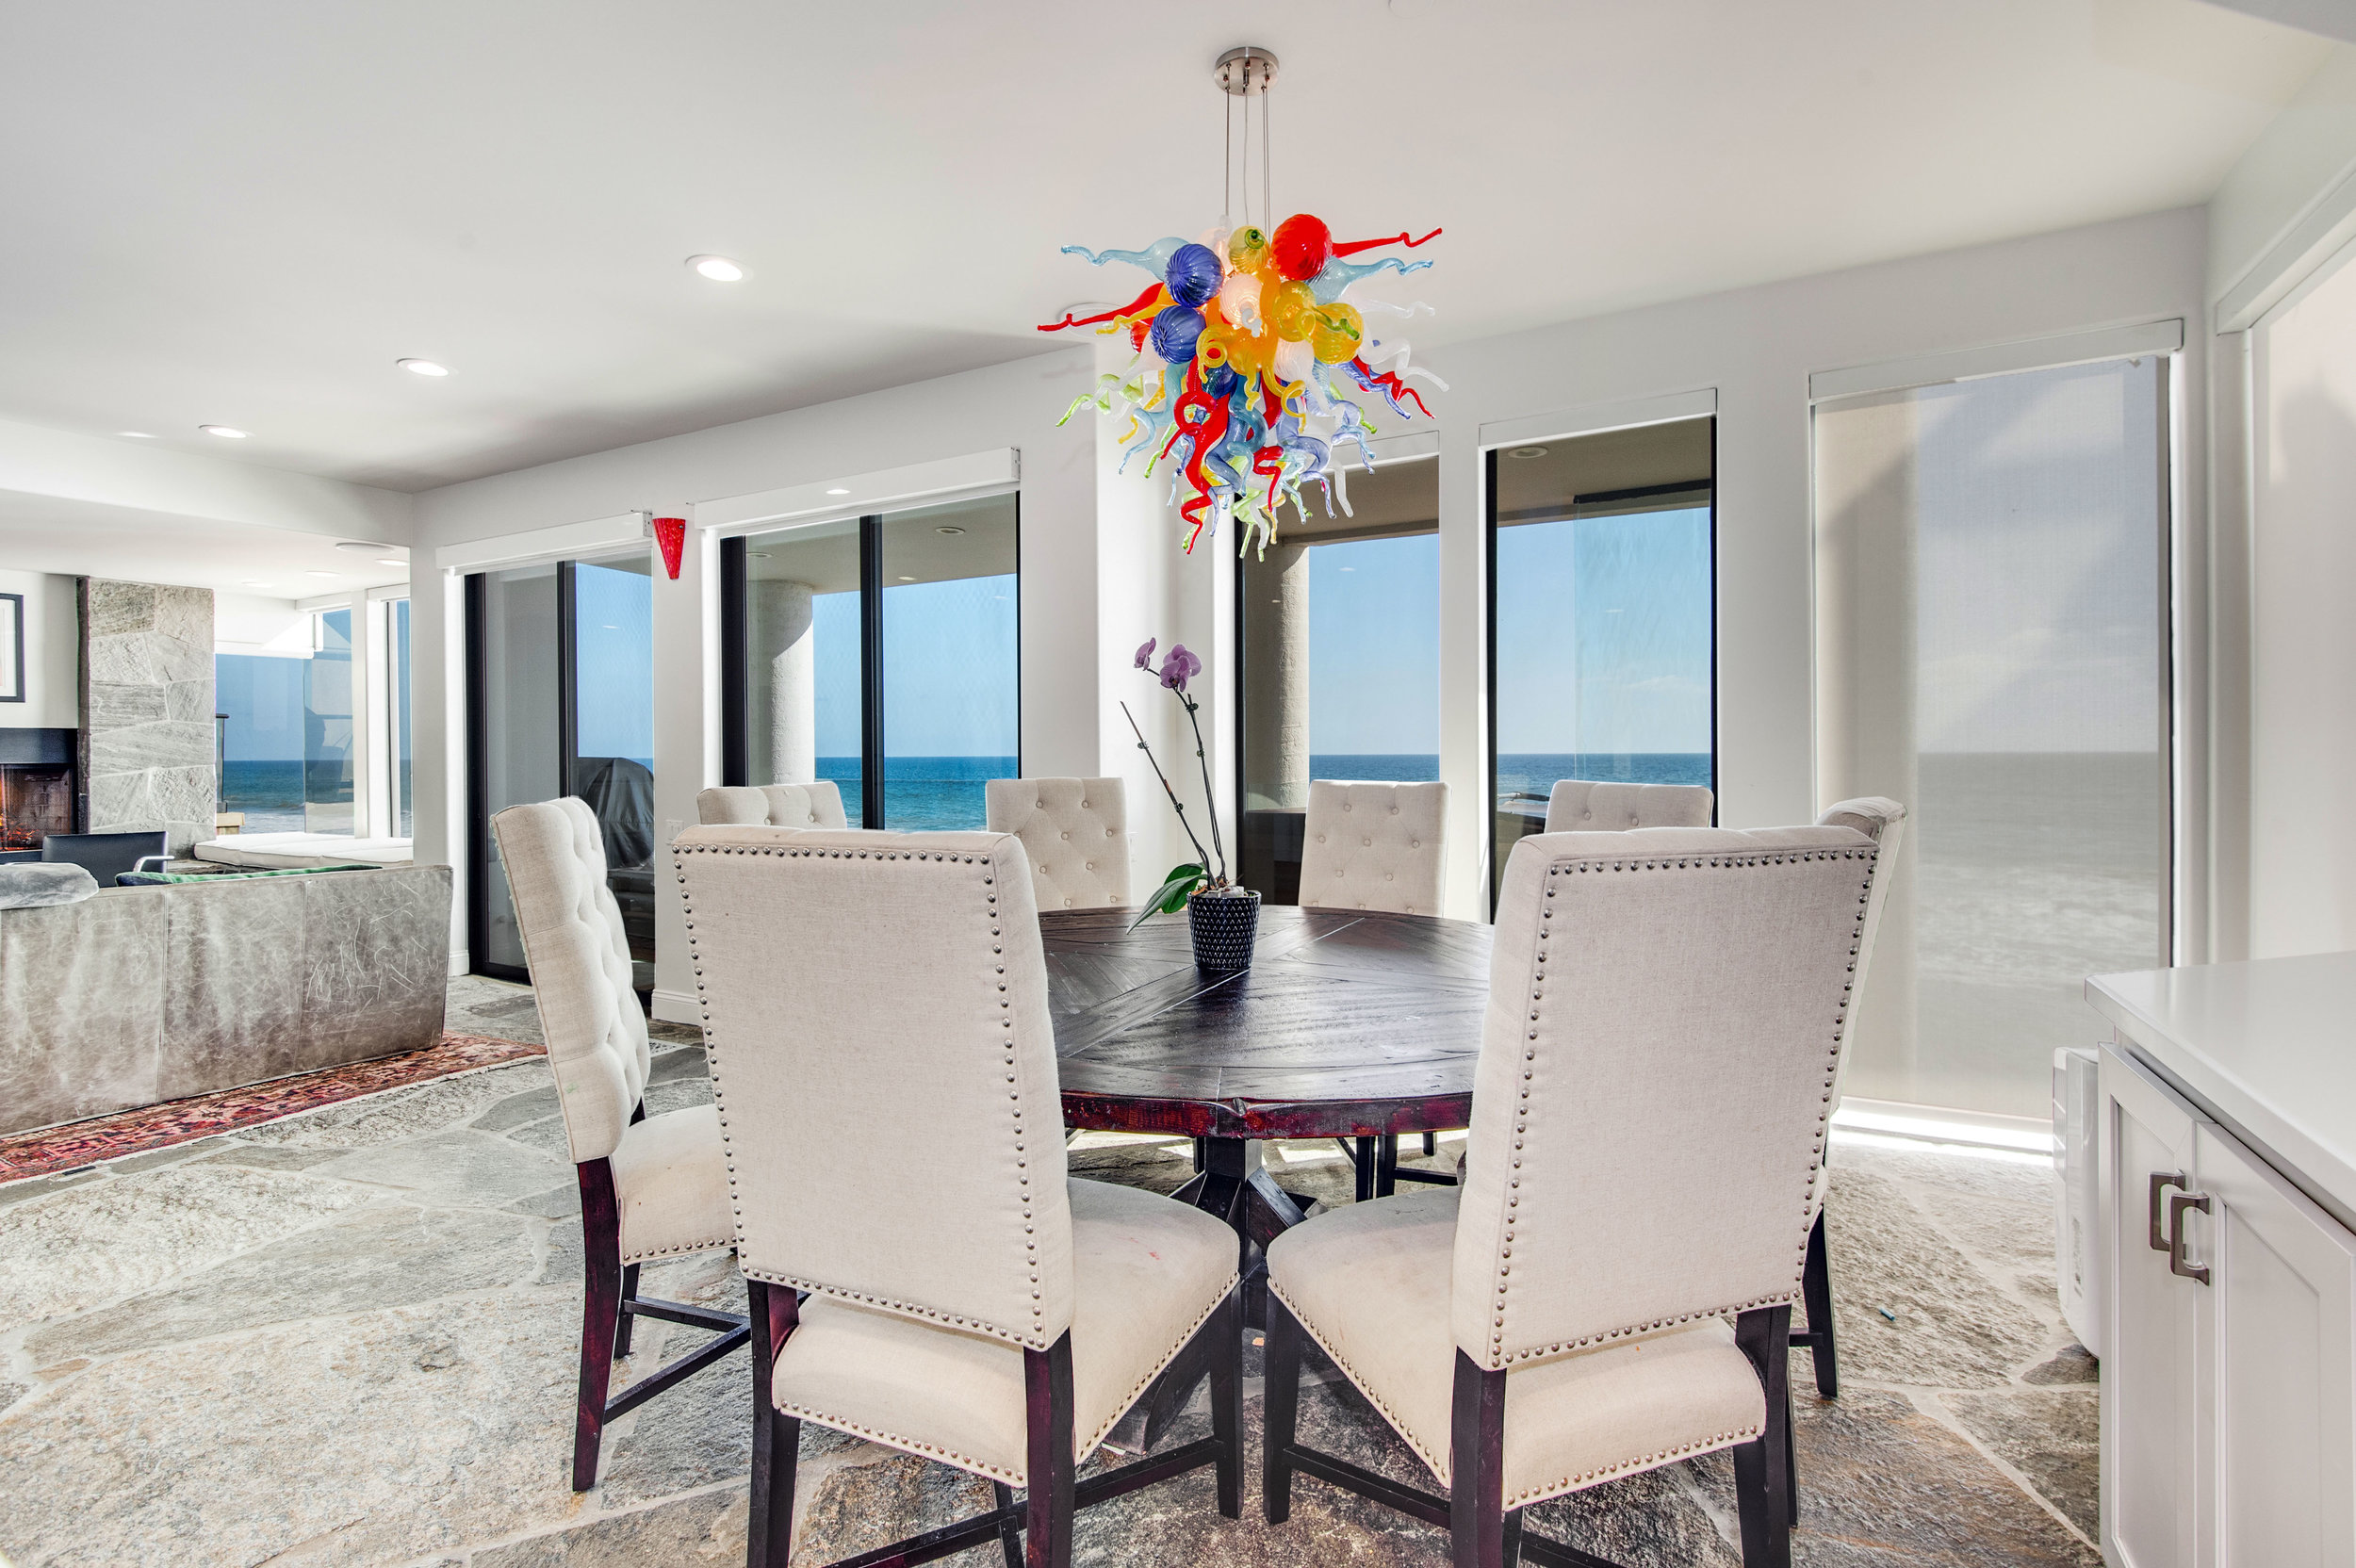 012 Dining 25252 Malibu Road For Sale Lease The Malibu Life Team Luxury Real Estate.jpg